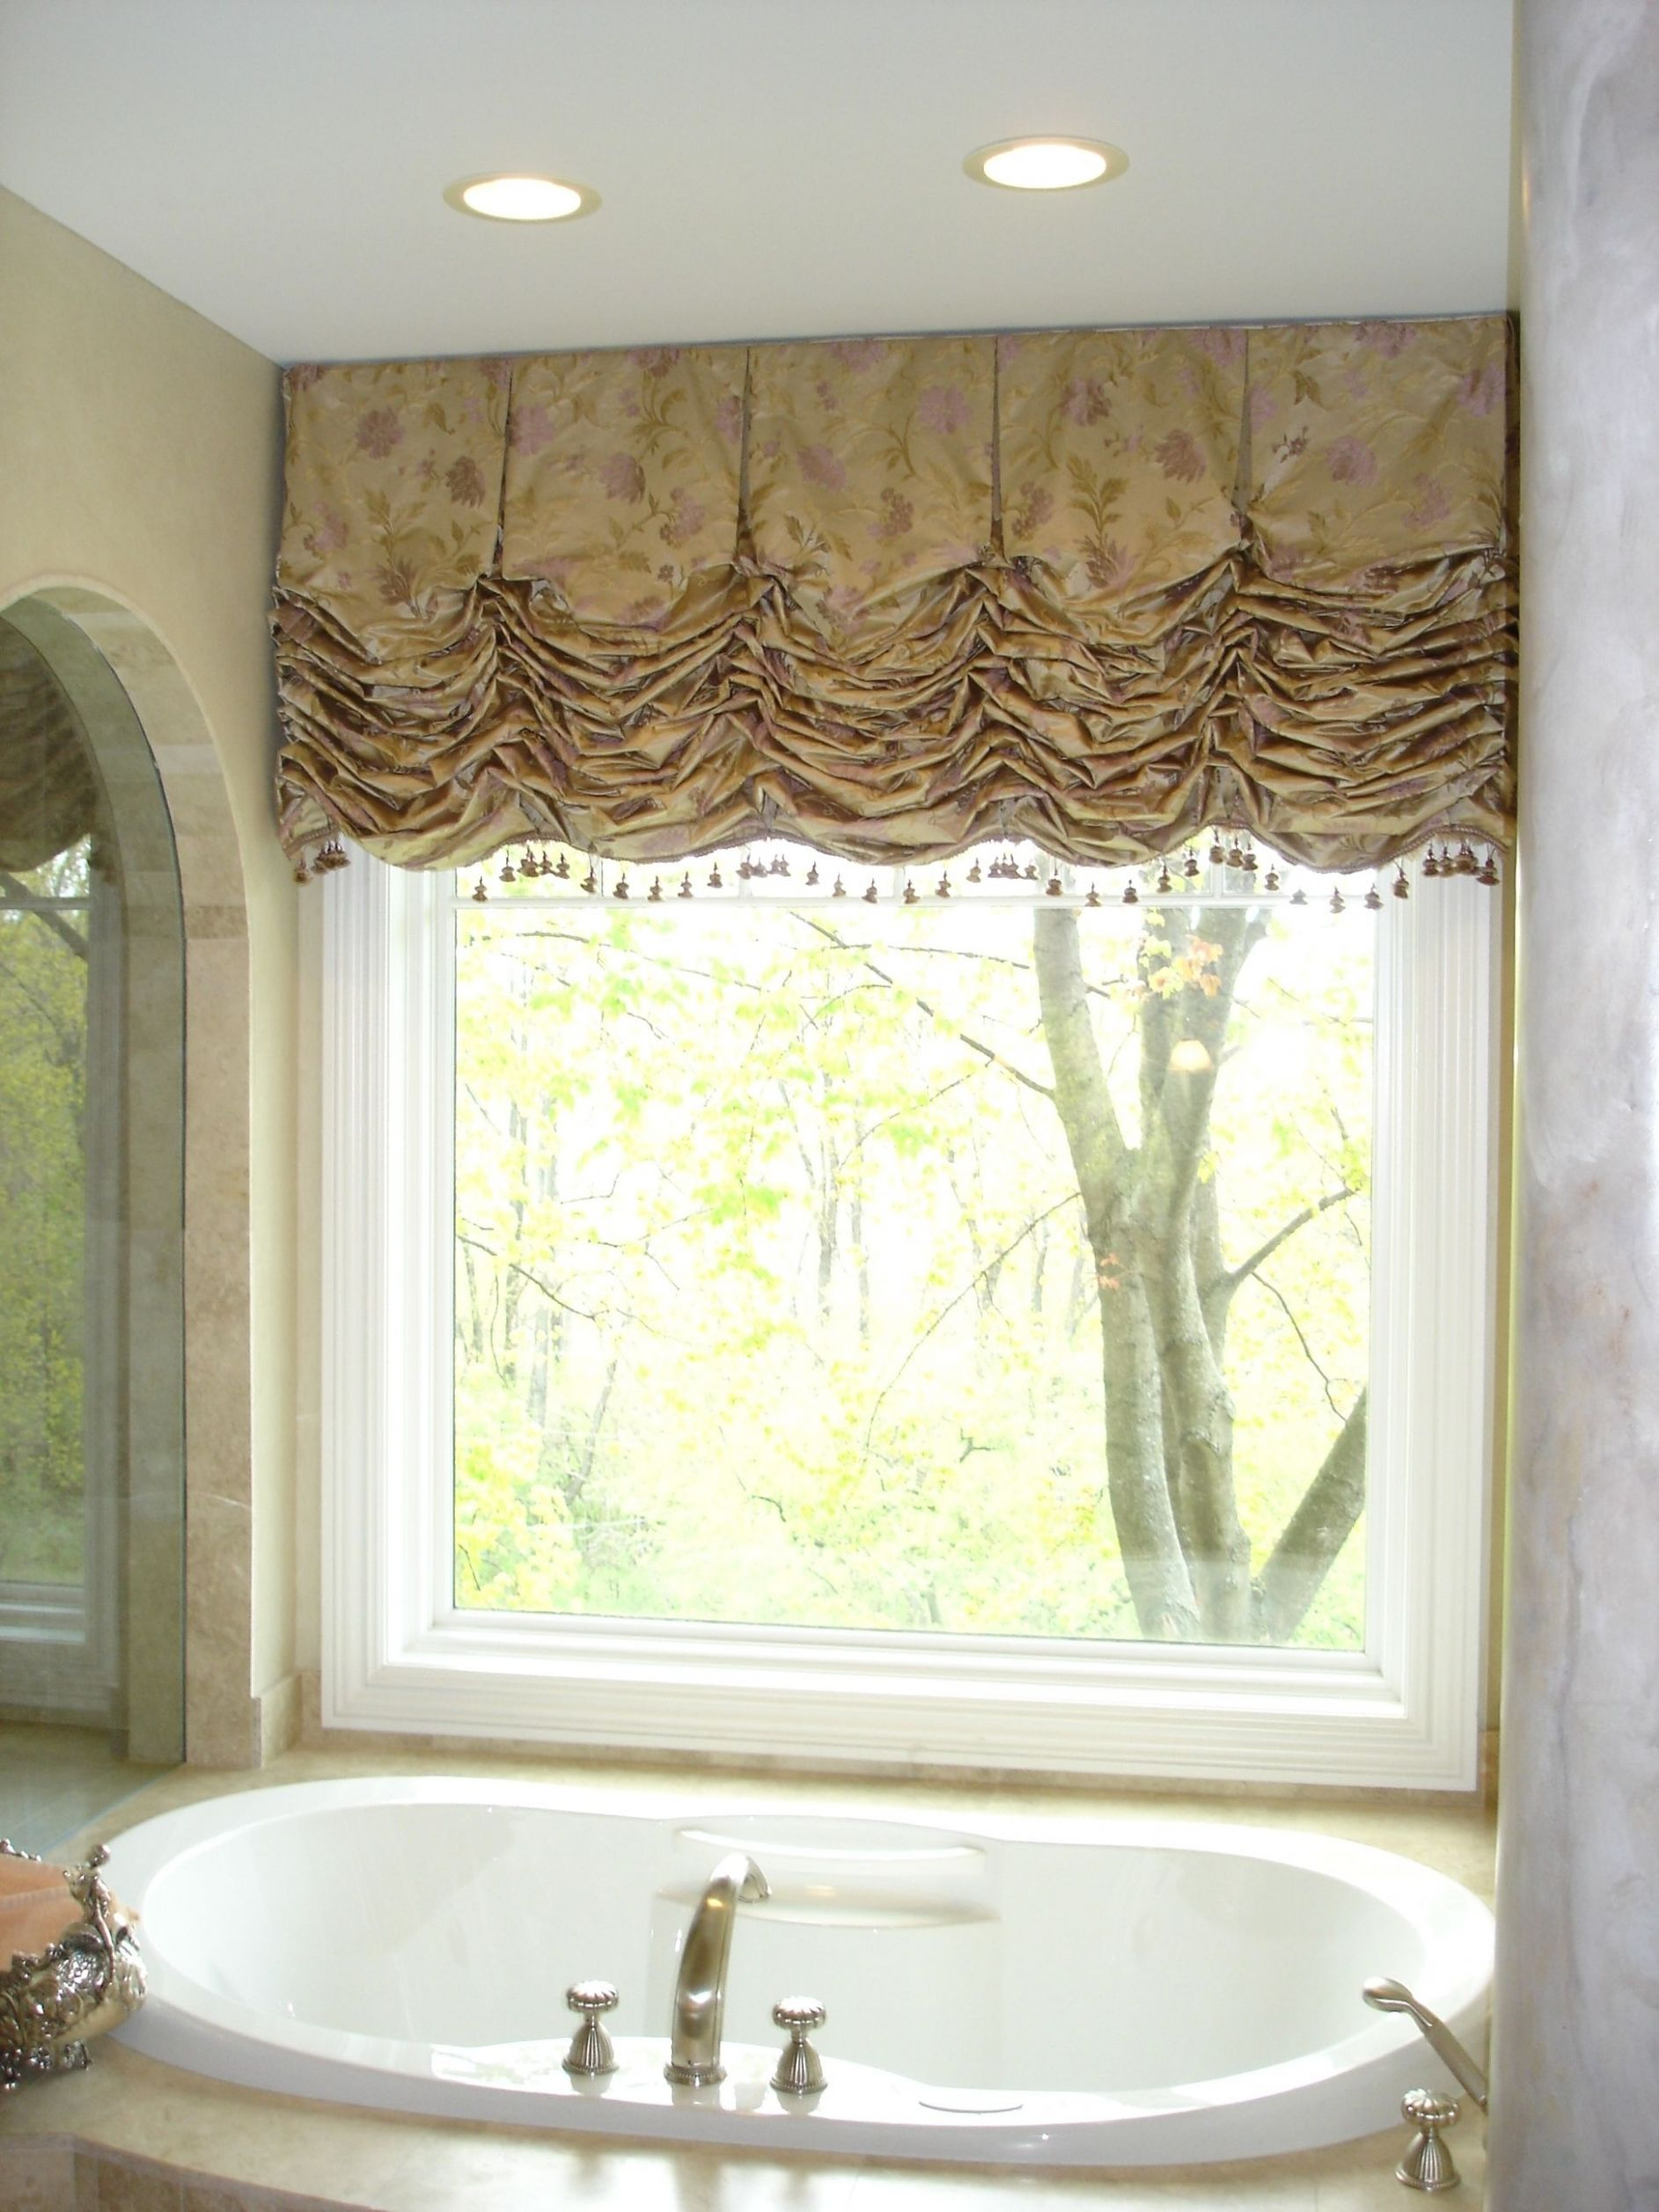 Style and elegance. (With images) | Bathroom valance, Bathroom ...